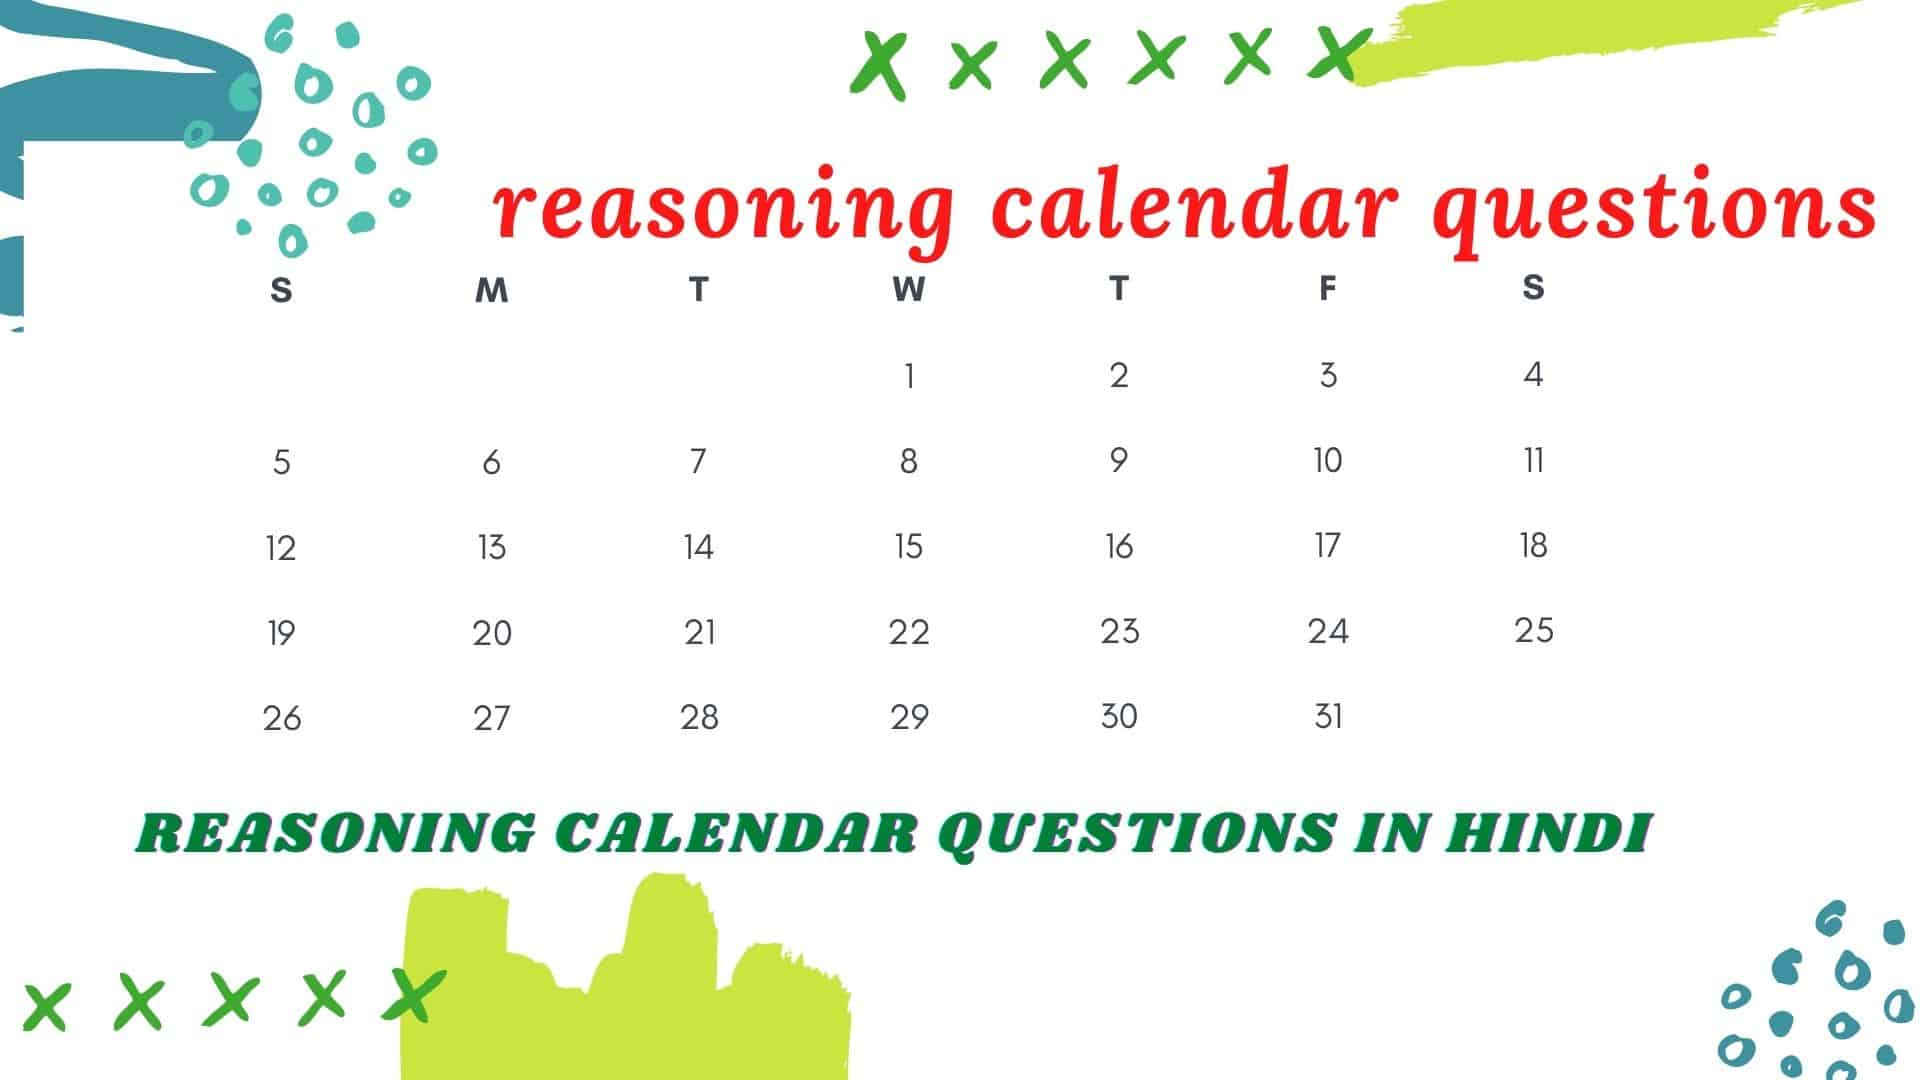 Calendar Questions in Hindi